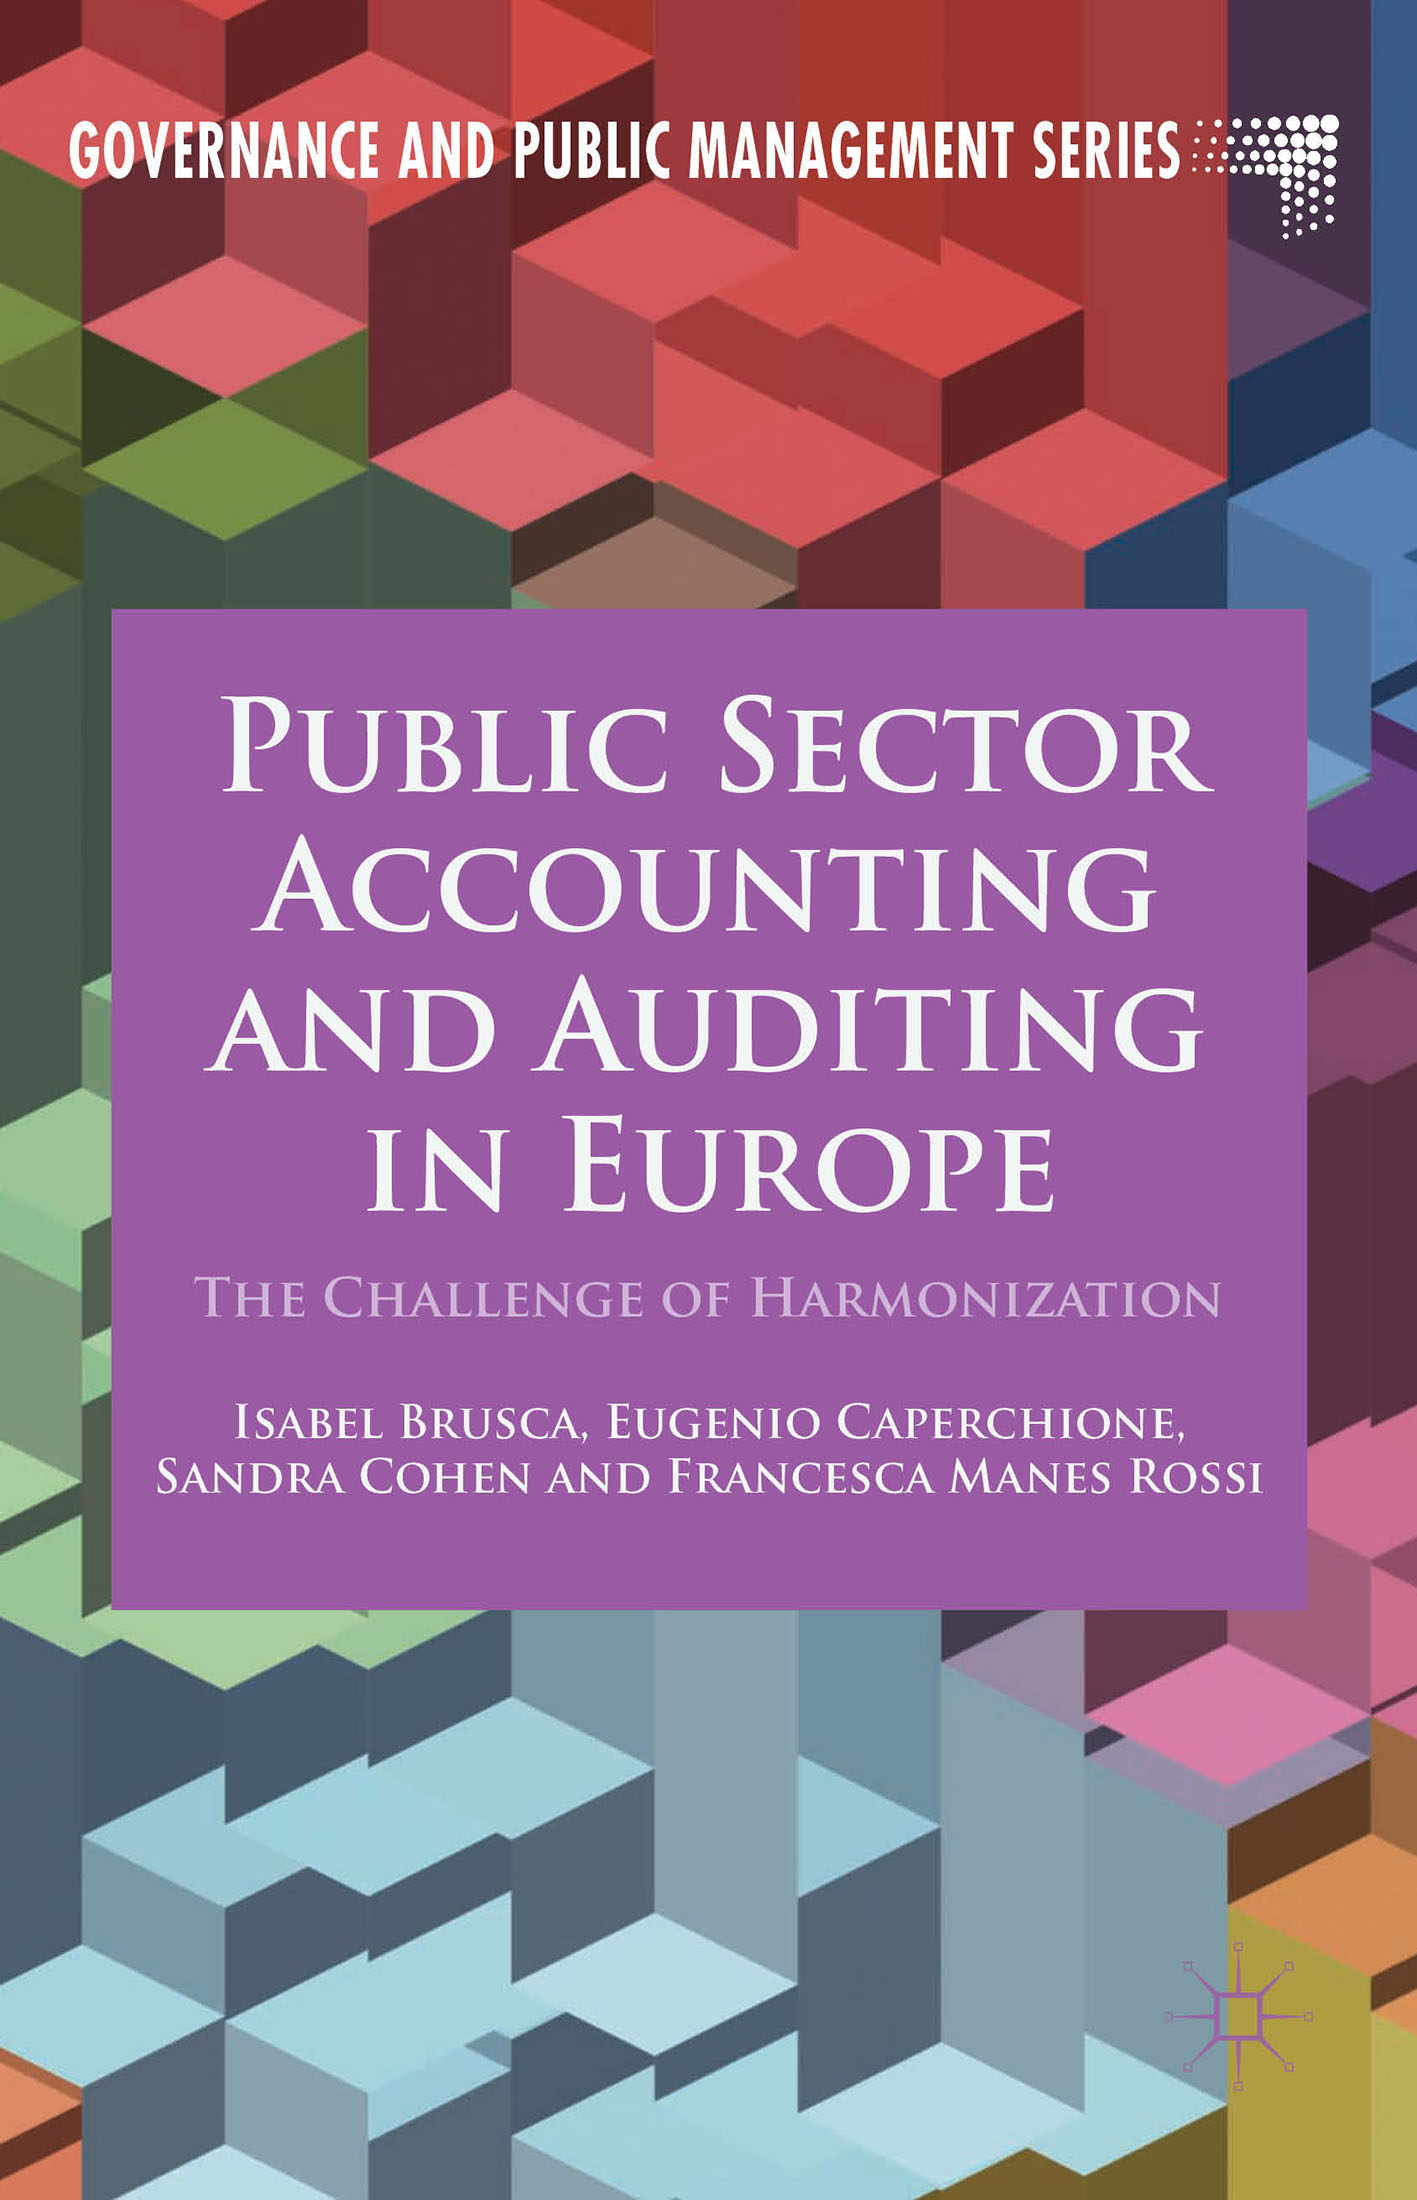 Download Ebook Public Sector Accounting and Auditing in Europe by Isabel Brusca Pdf